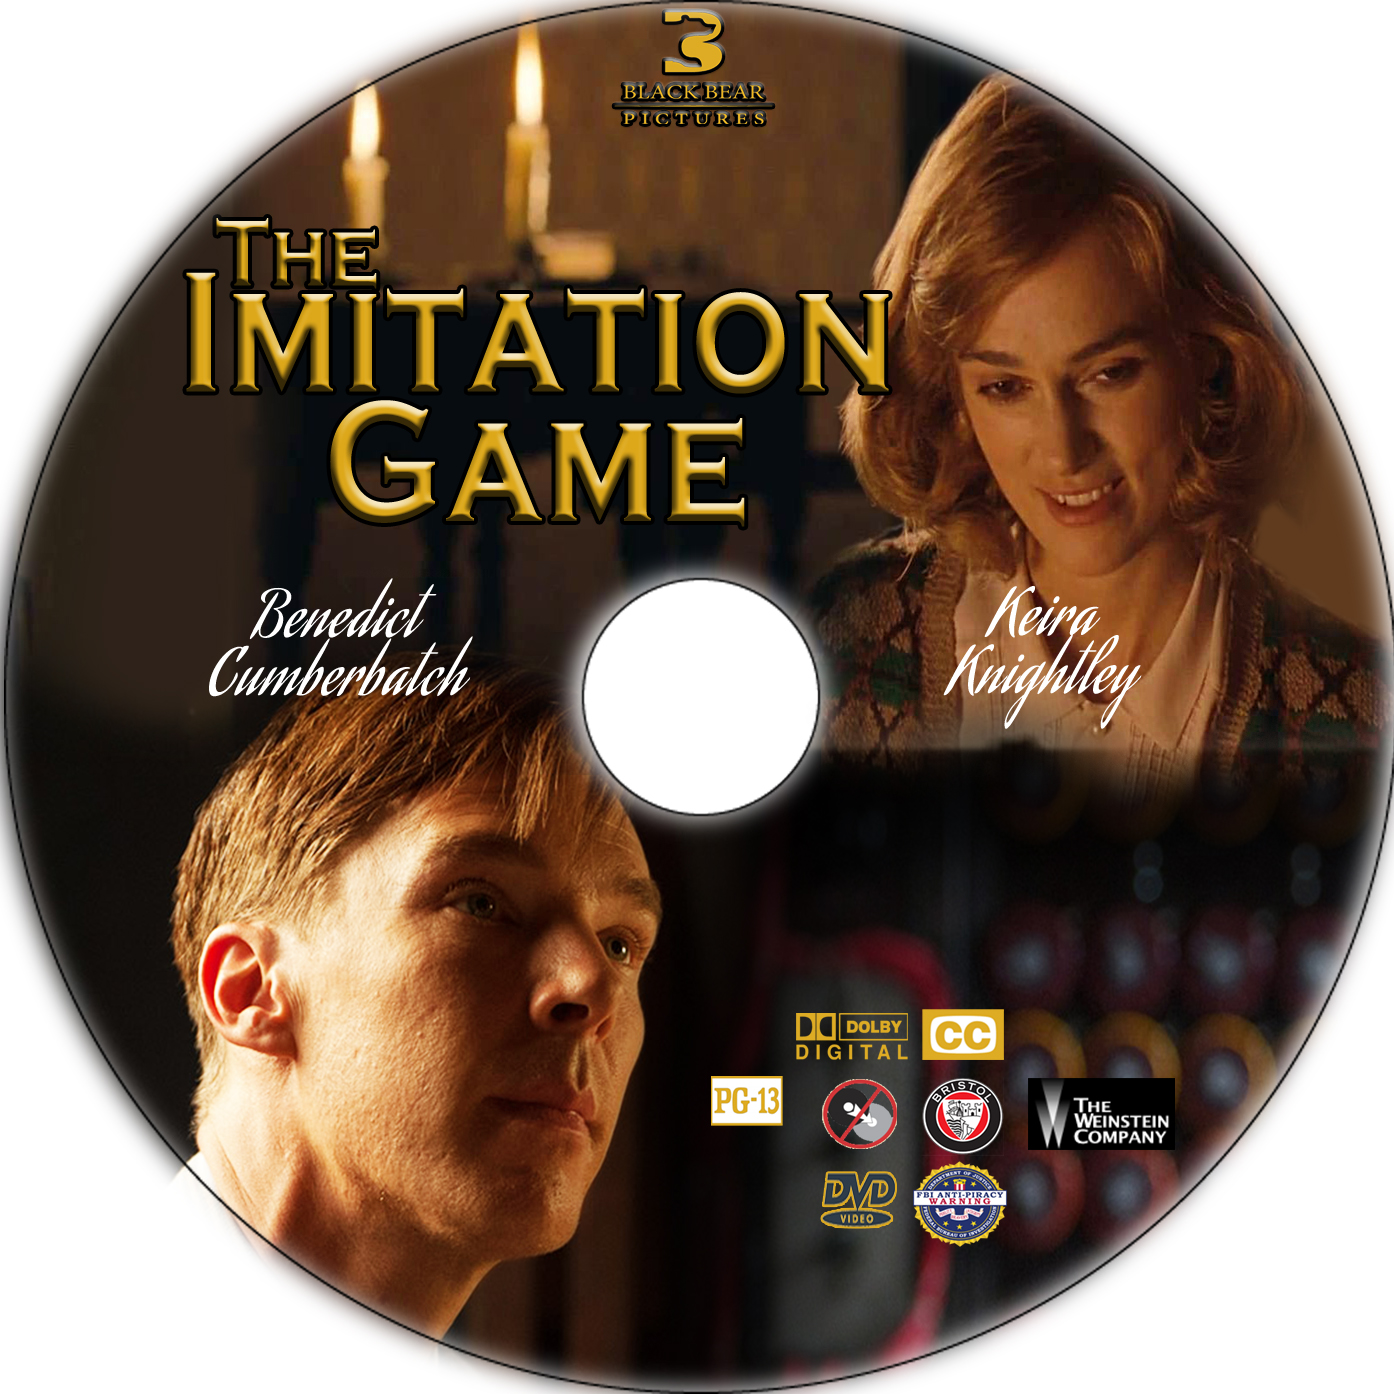 The Imitation Game 2014 Dvd Covers Cover Century Over 500 000 Album Art Covers For Free